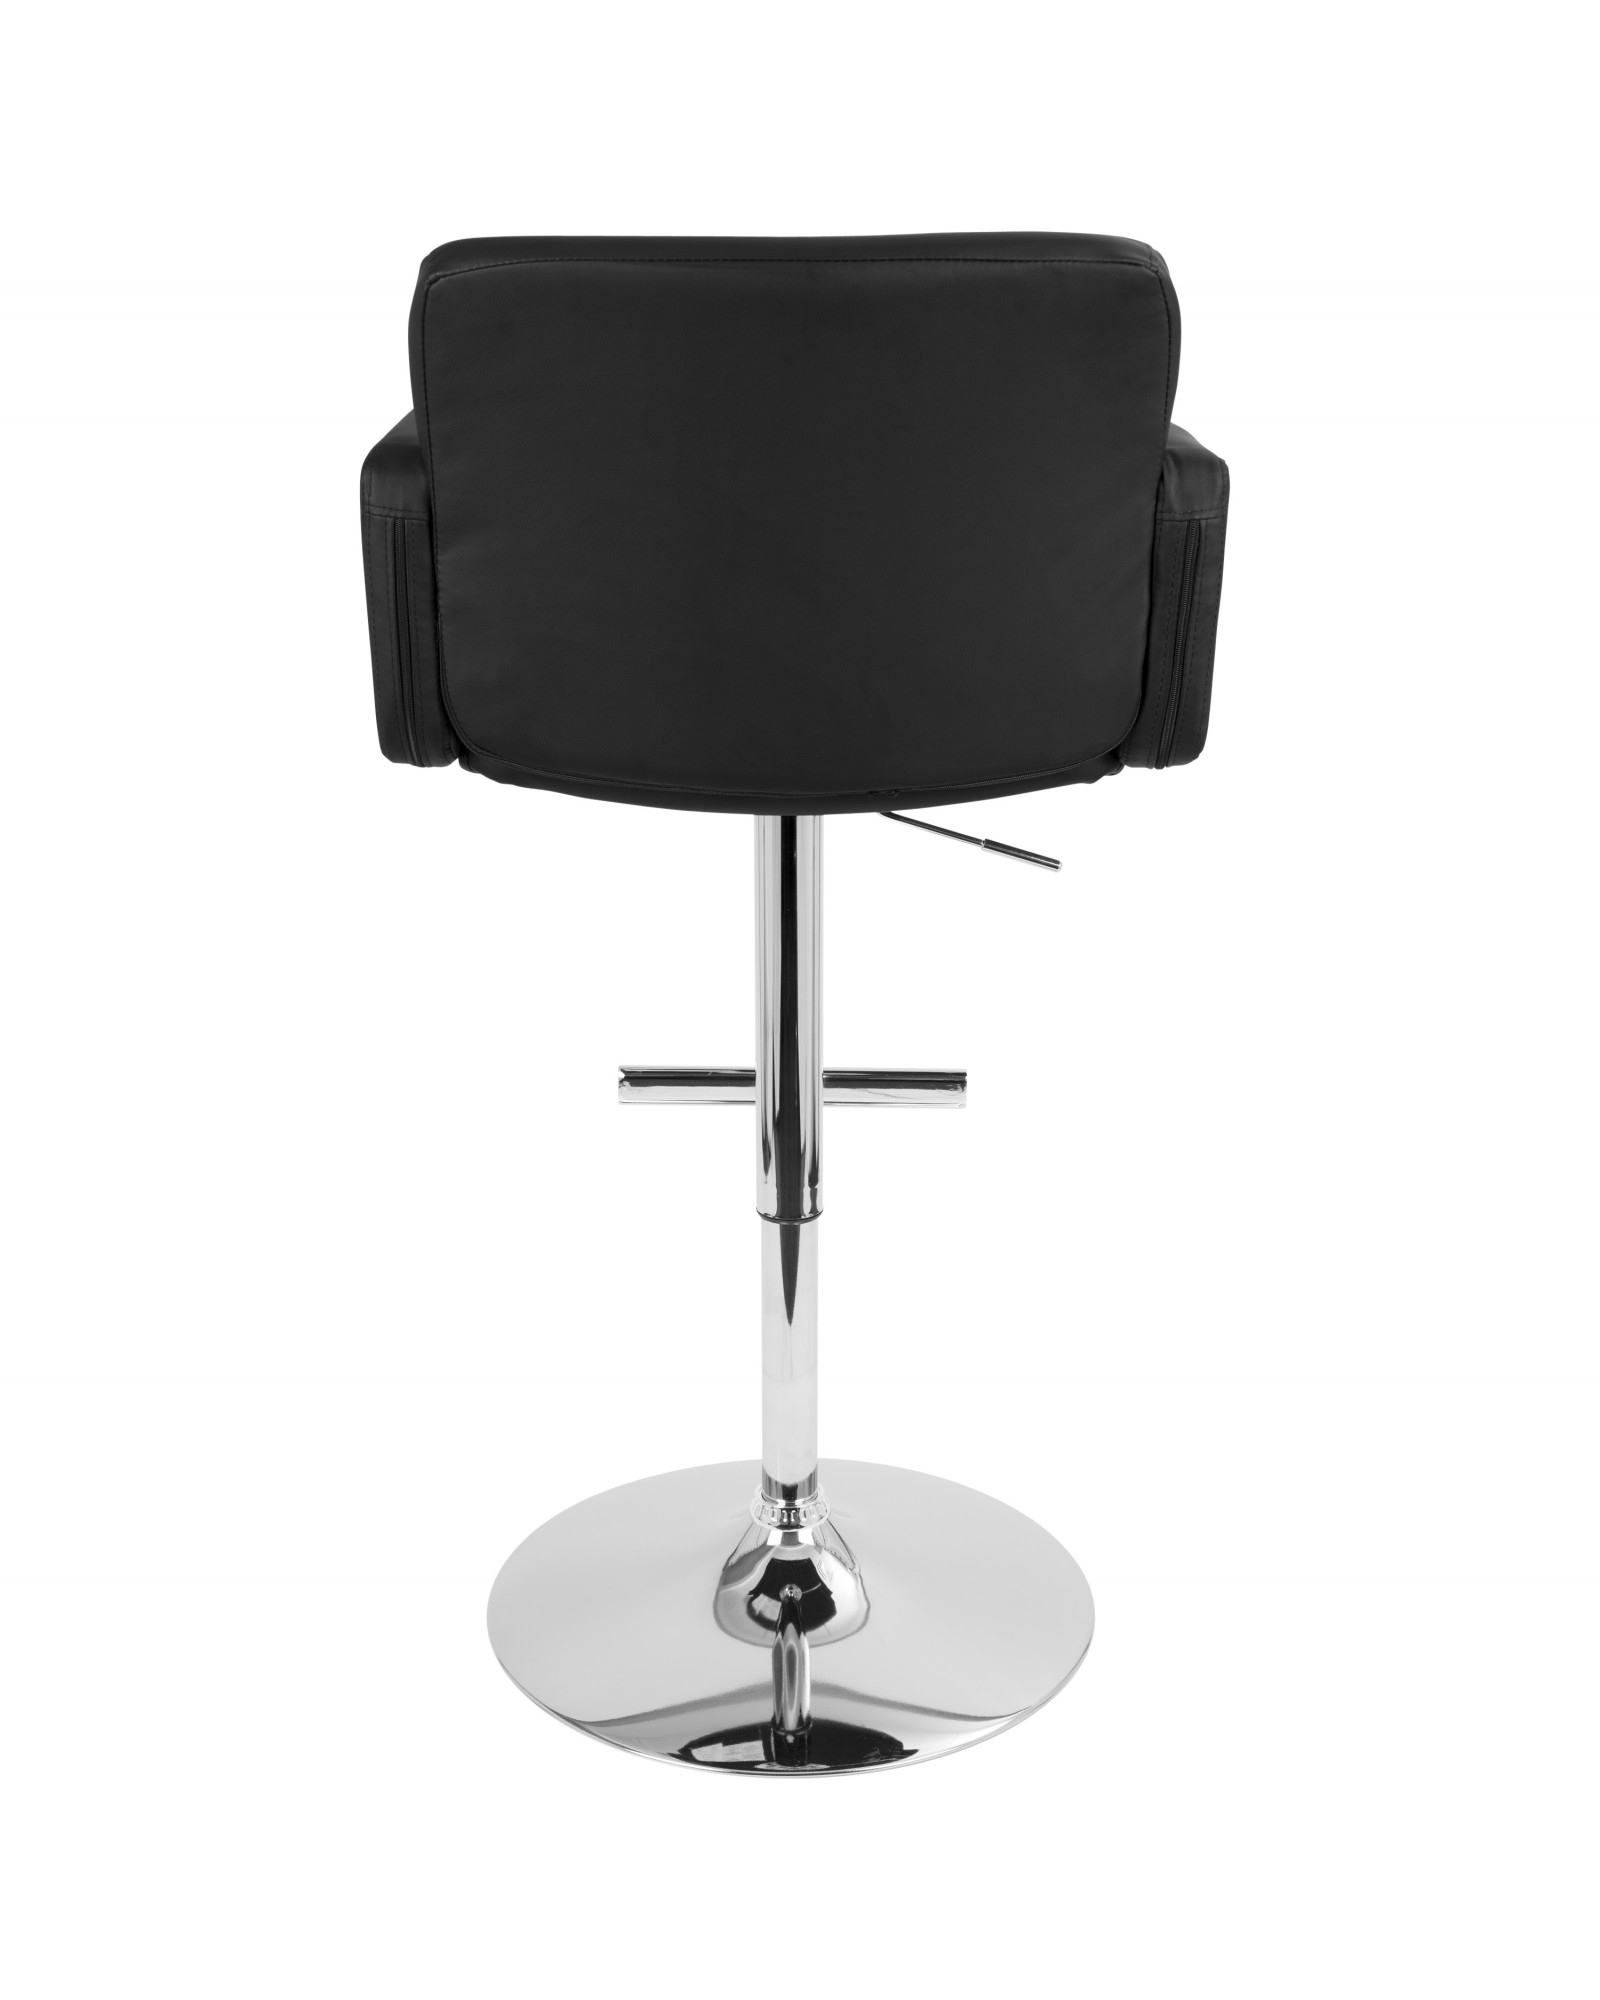 Stout Contemporary Adjustable Barstool with Swivel and Black Faux Leather